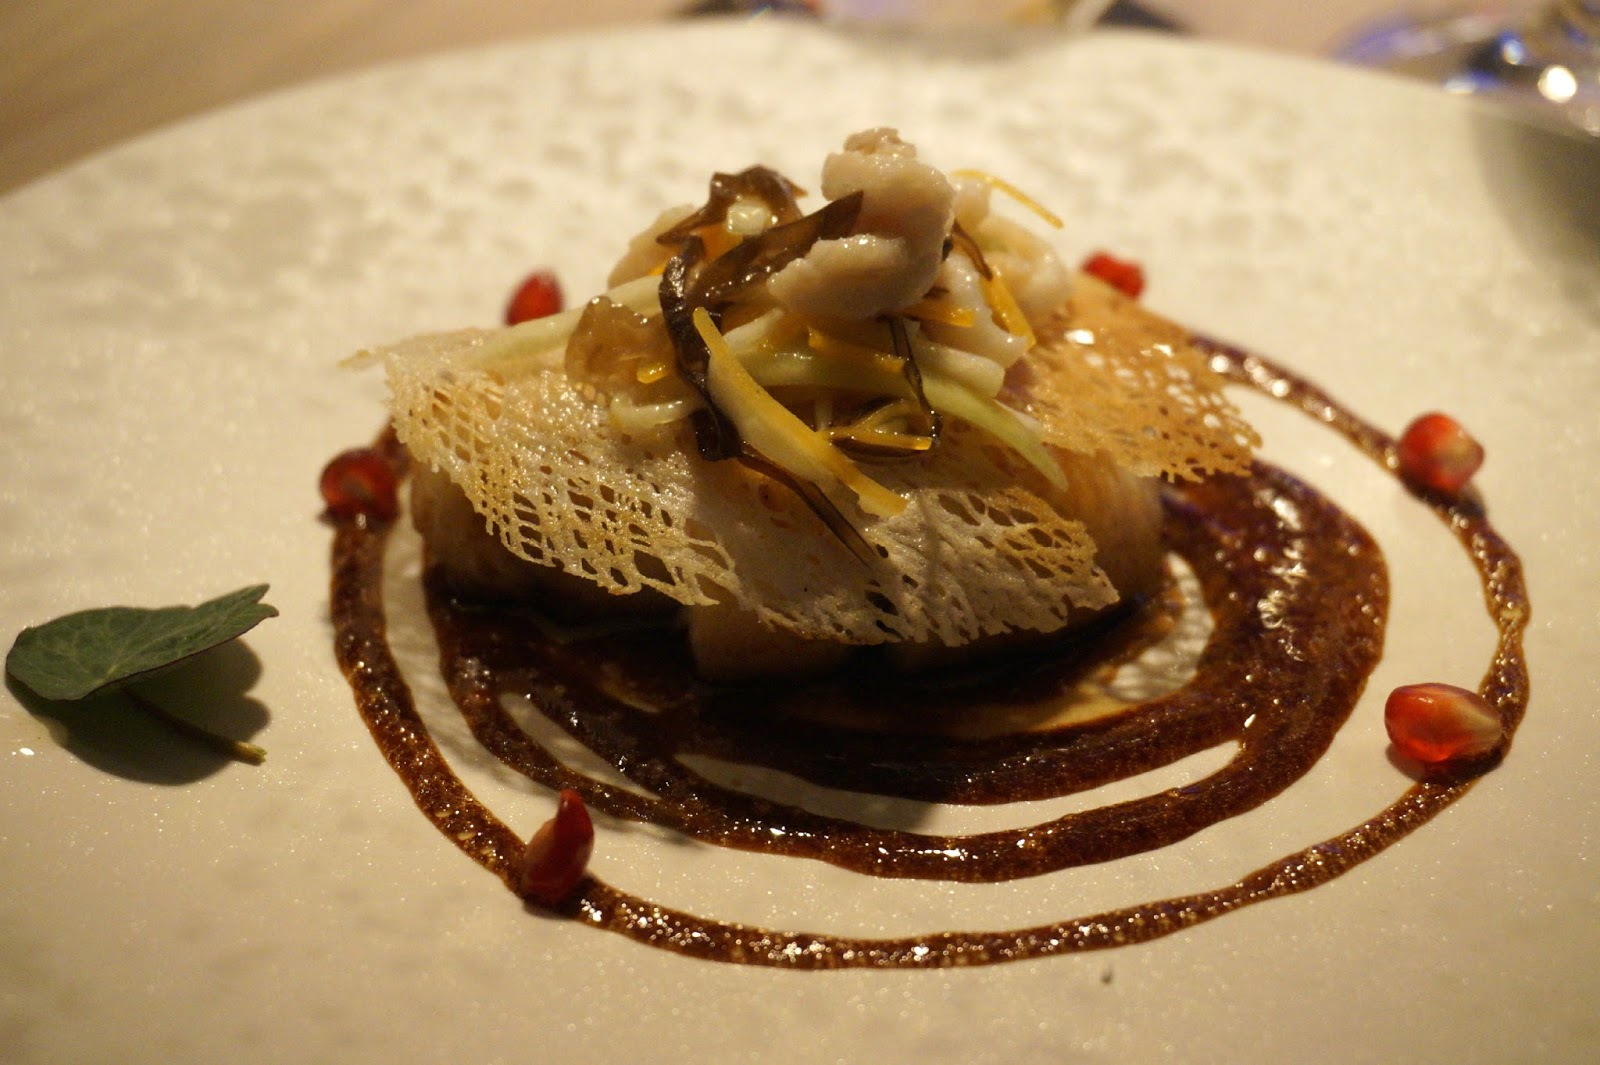 Wok-fried seabass fillet served on rice paper with a balsamic vinegar, black truffle and pomegranate reduction